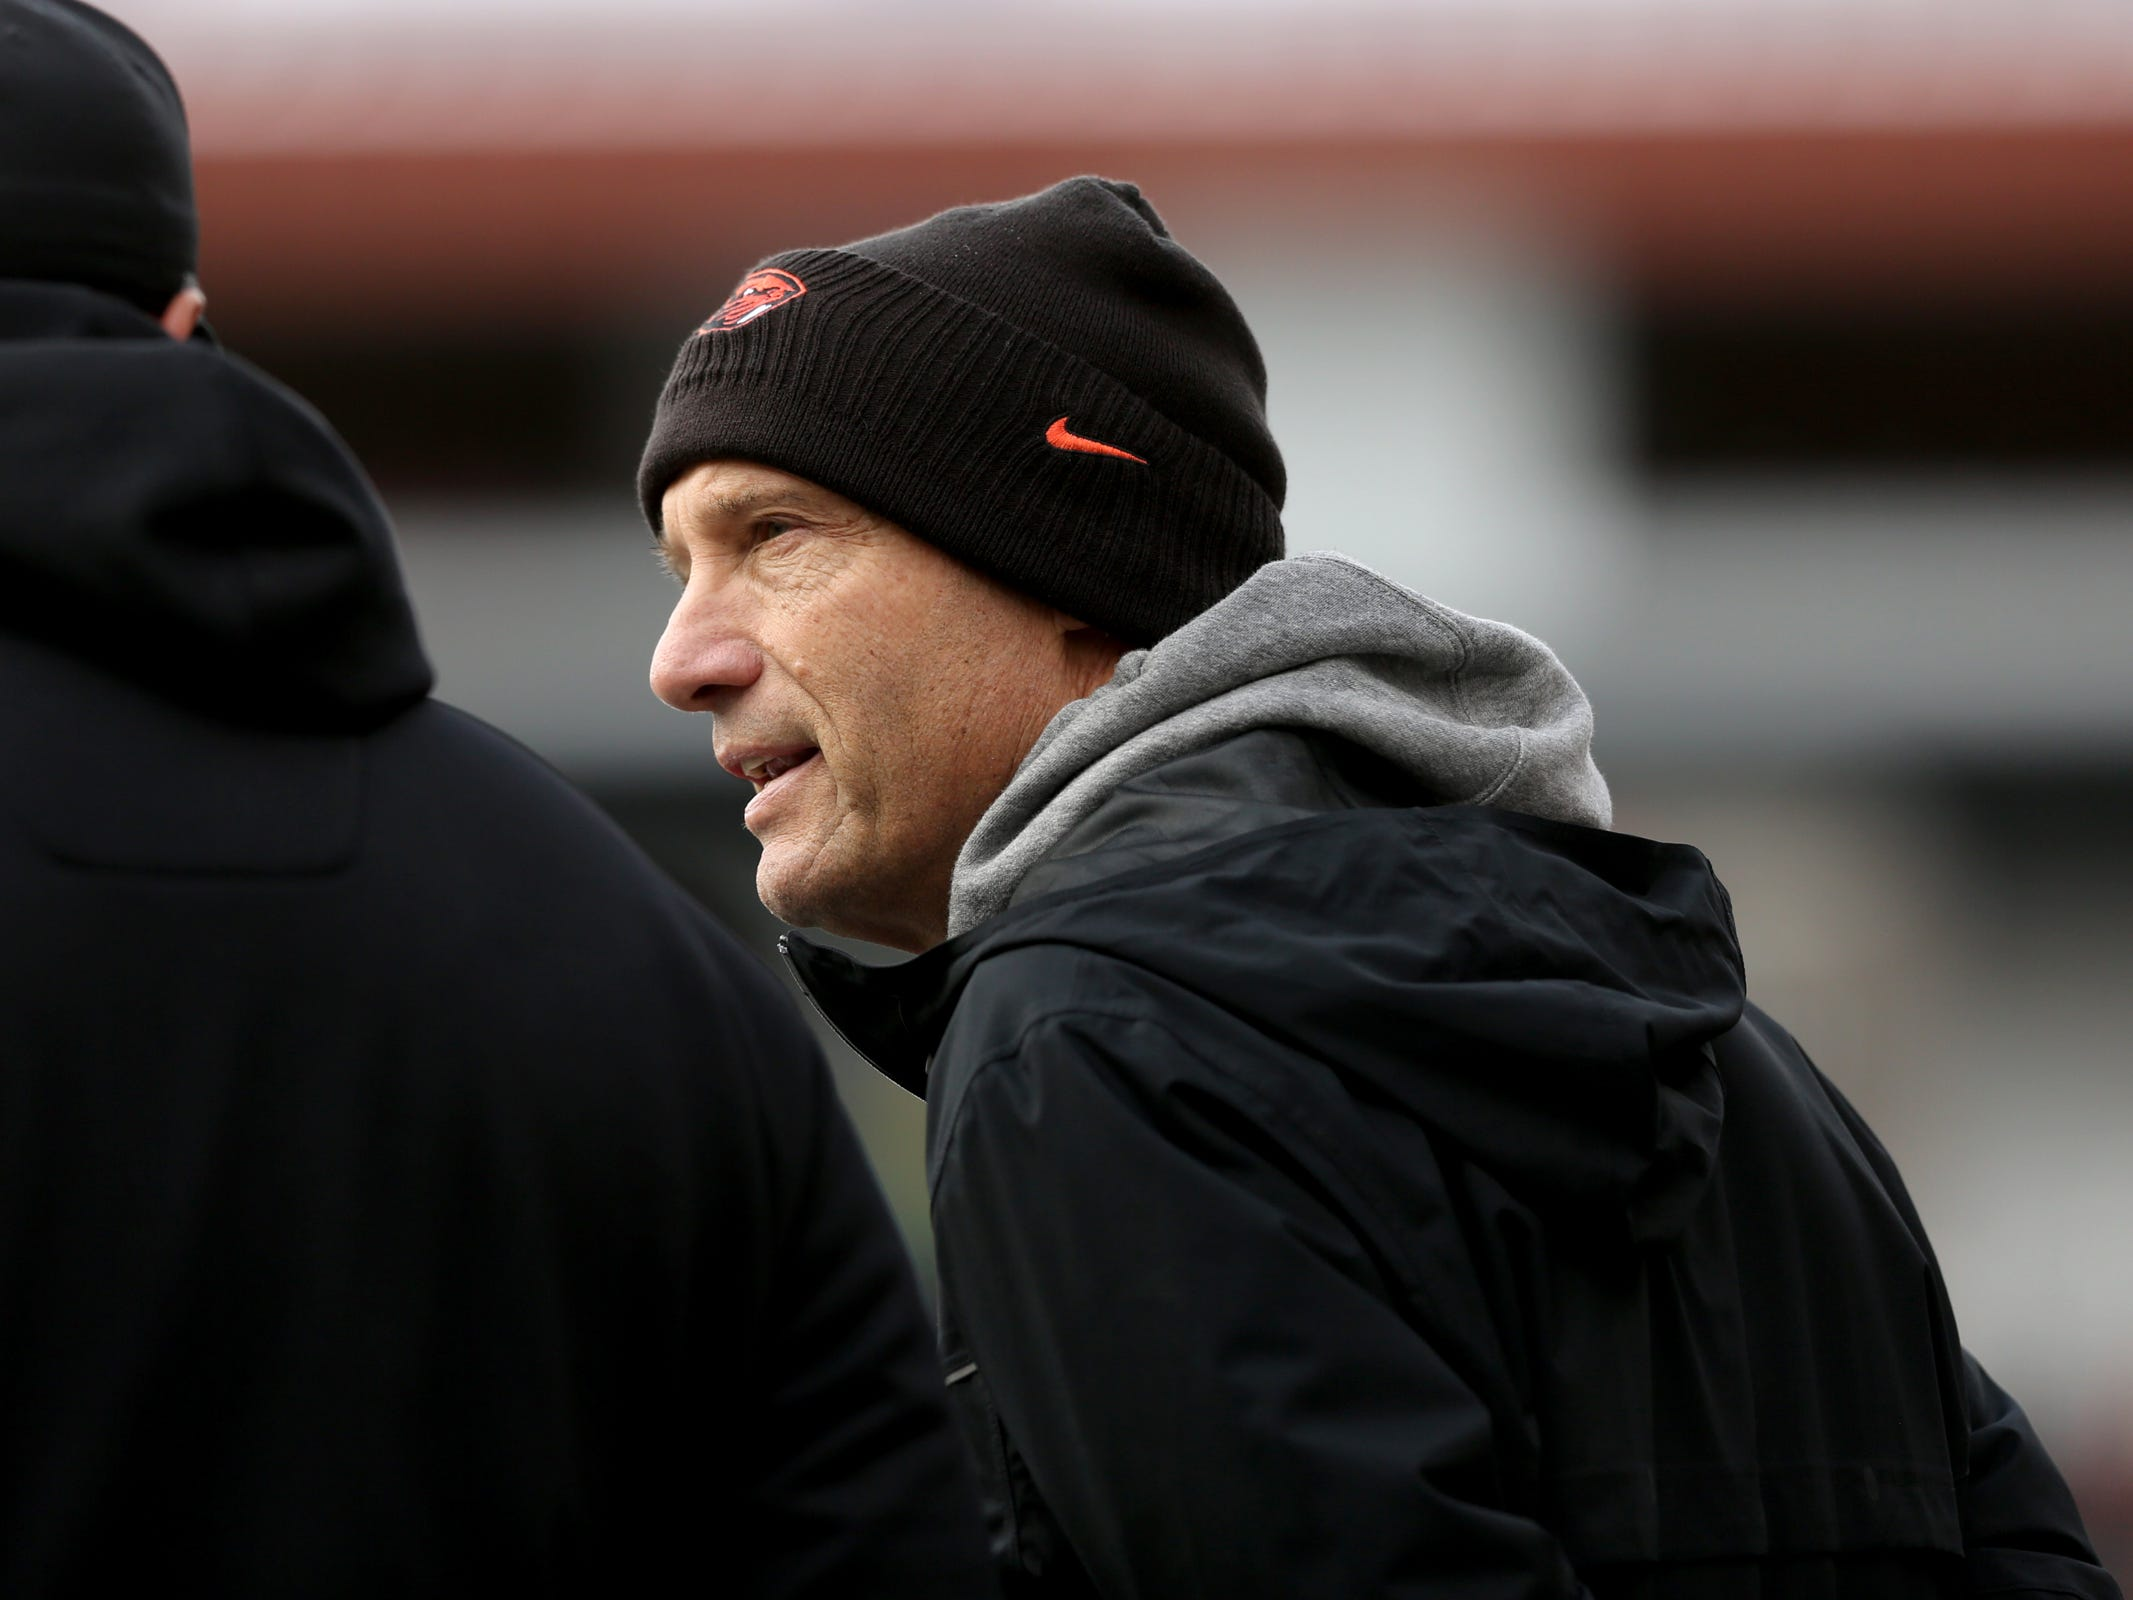 Oregon State analyst Mike Riley watches from the sidelines the Oregon vs. Oregon State Civil war football game at Oregon State University in Corvallis on Friday, Nov. 23, 2018.